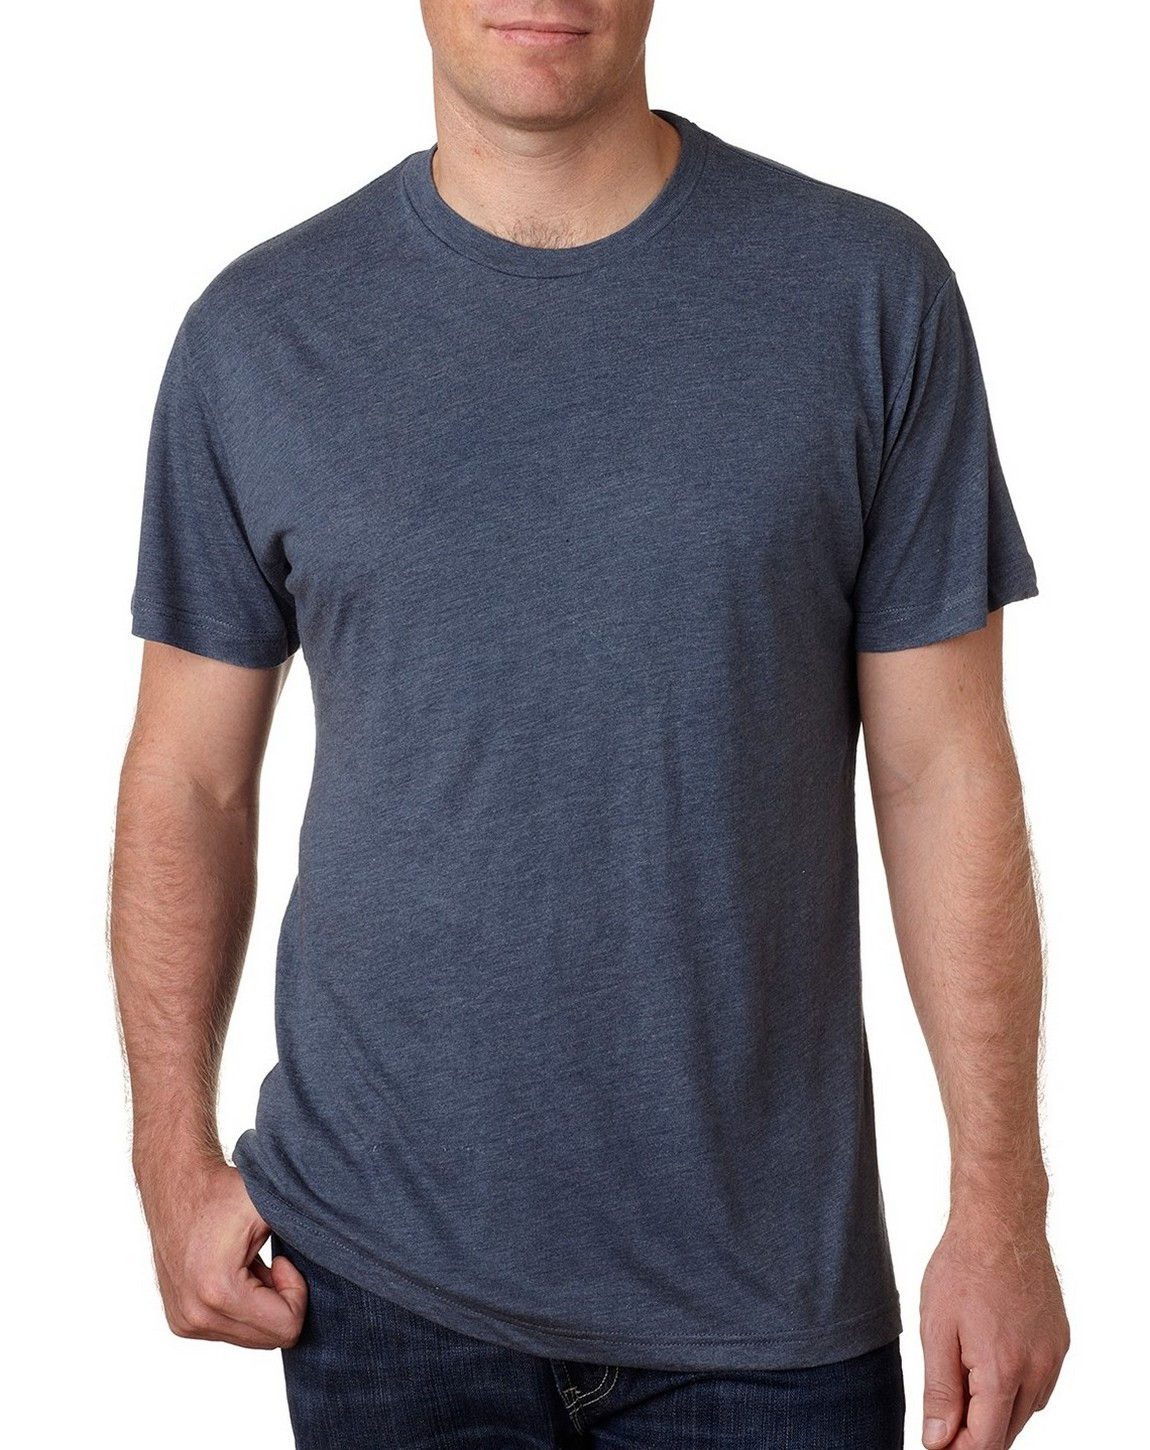 Next level 6010 men s triblend tee for Next level homes